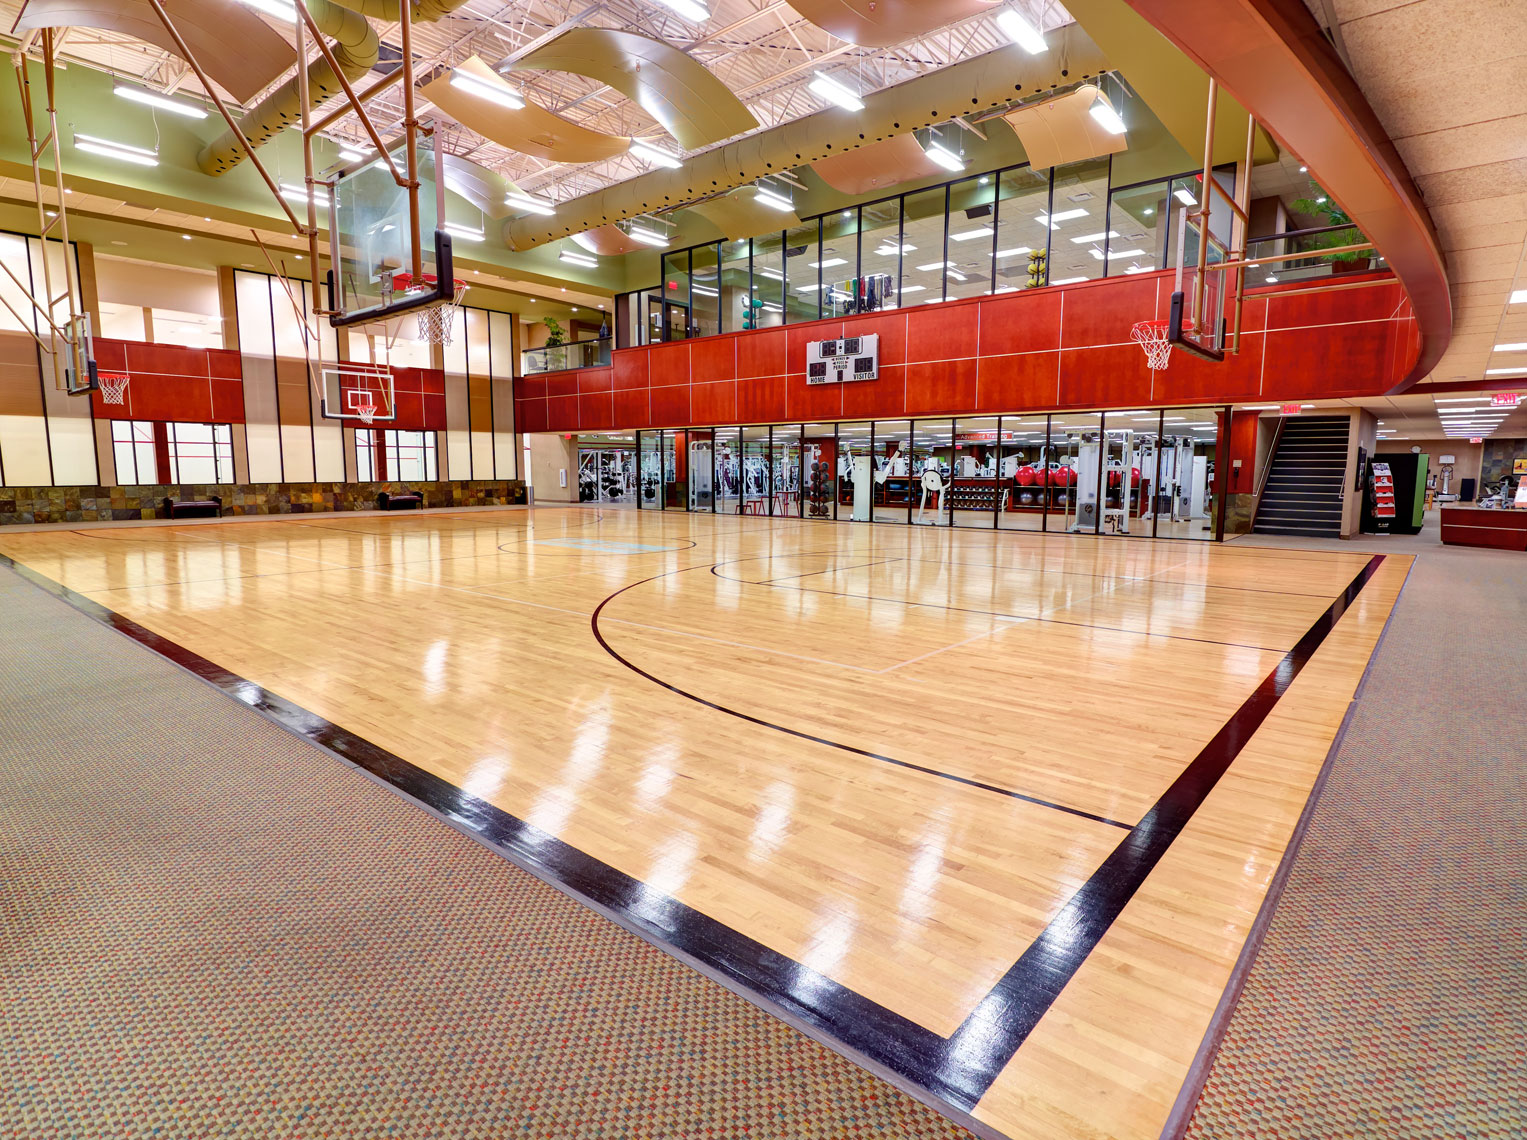 Life Time Fitness indoor basketball court/architectural photo